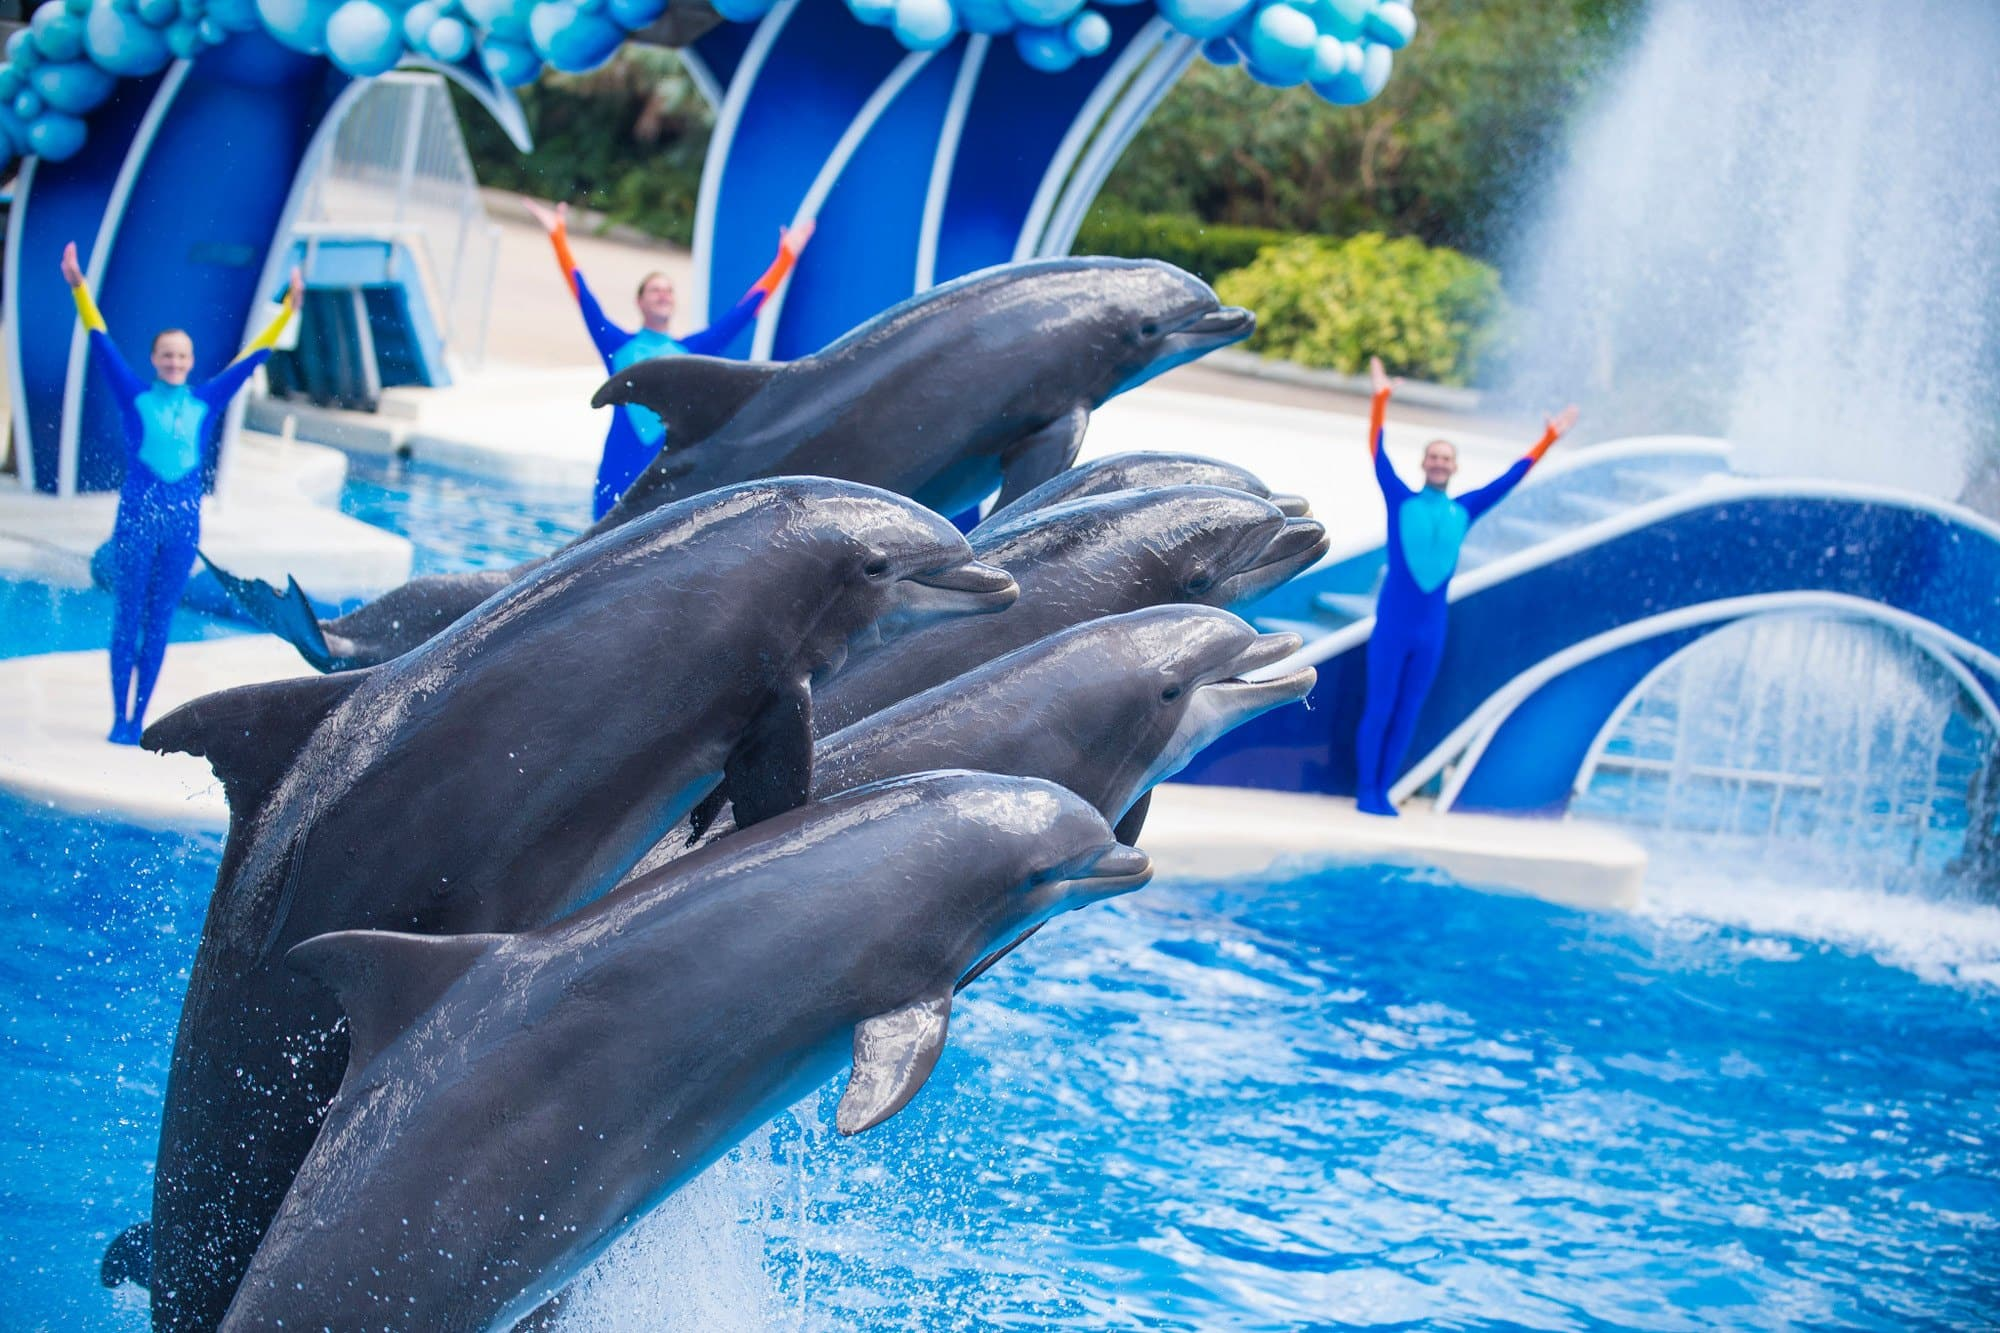 Unless there's lightning or thunder, the show will go on at SeaWorld Orlando, even in the rain